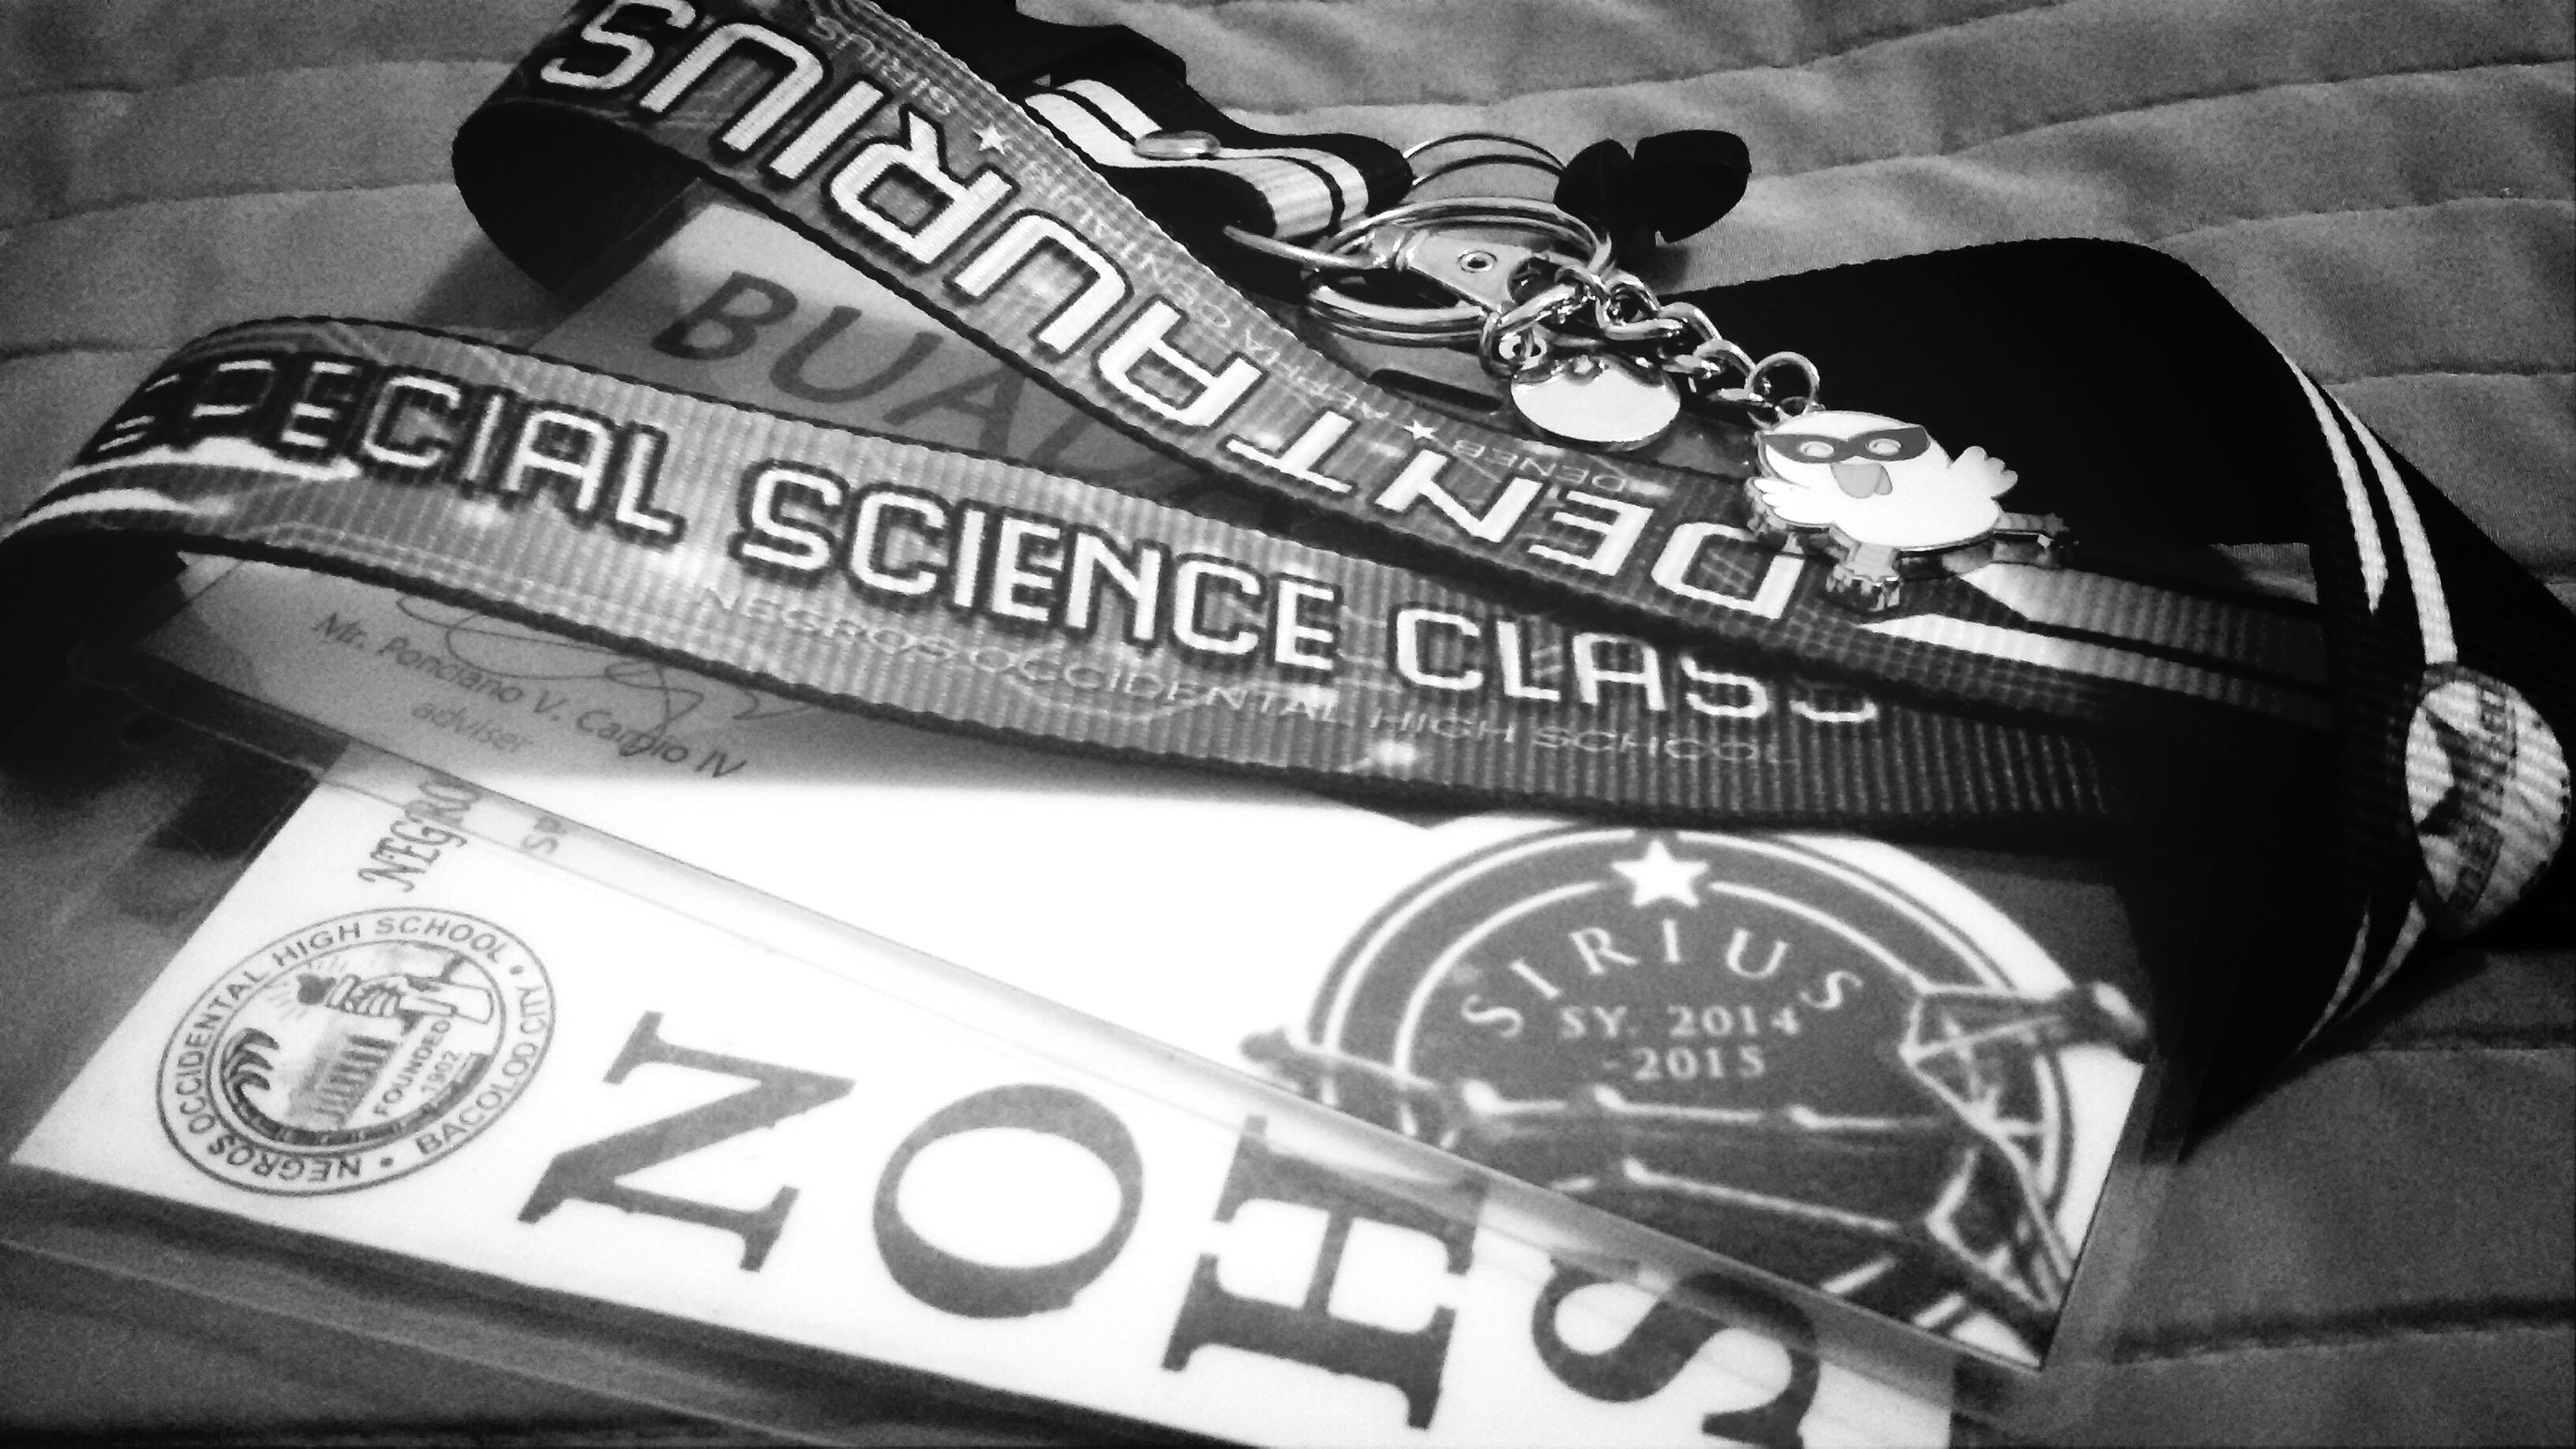 Four years of struggling, a something worth proud of... Special Science Class throughout the highschool years ^_^... I.D. Lanyard Senior